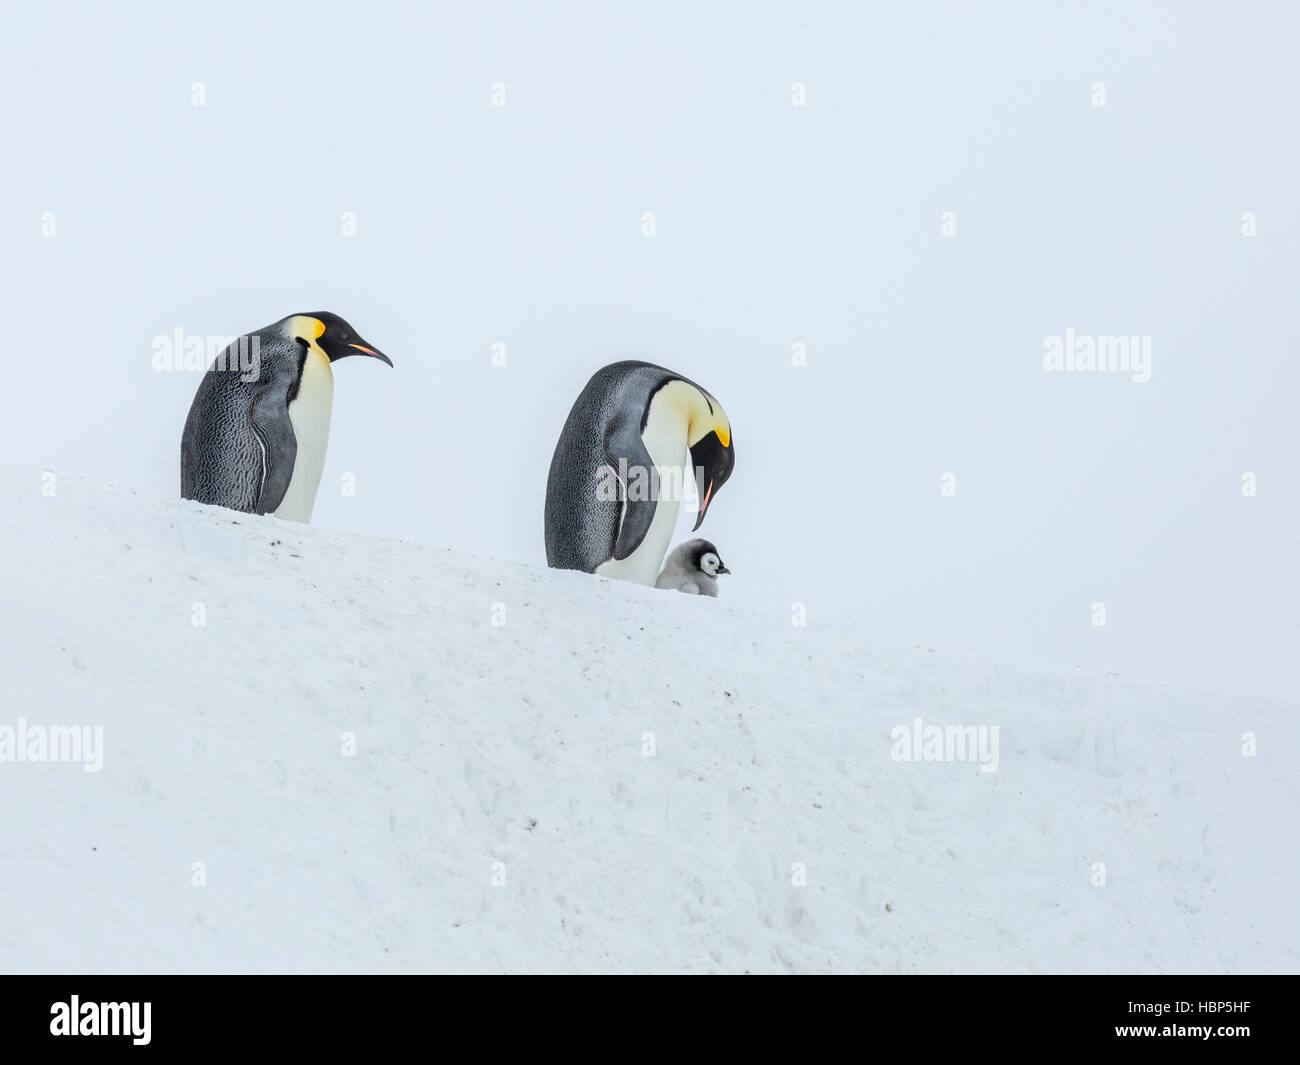 An Emperor Penguin chick with two adults on an ice ramp - Stock Image